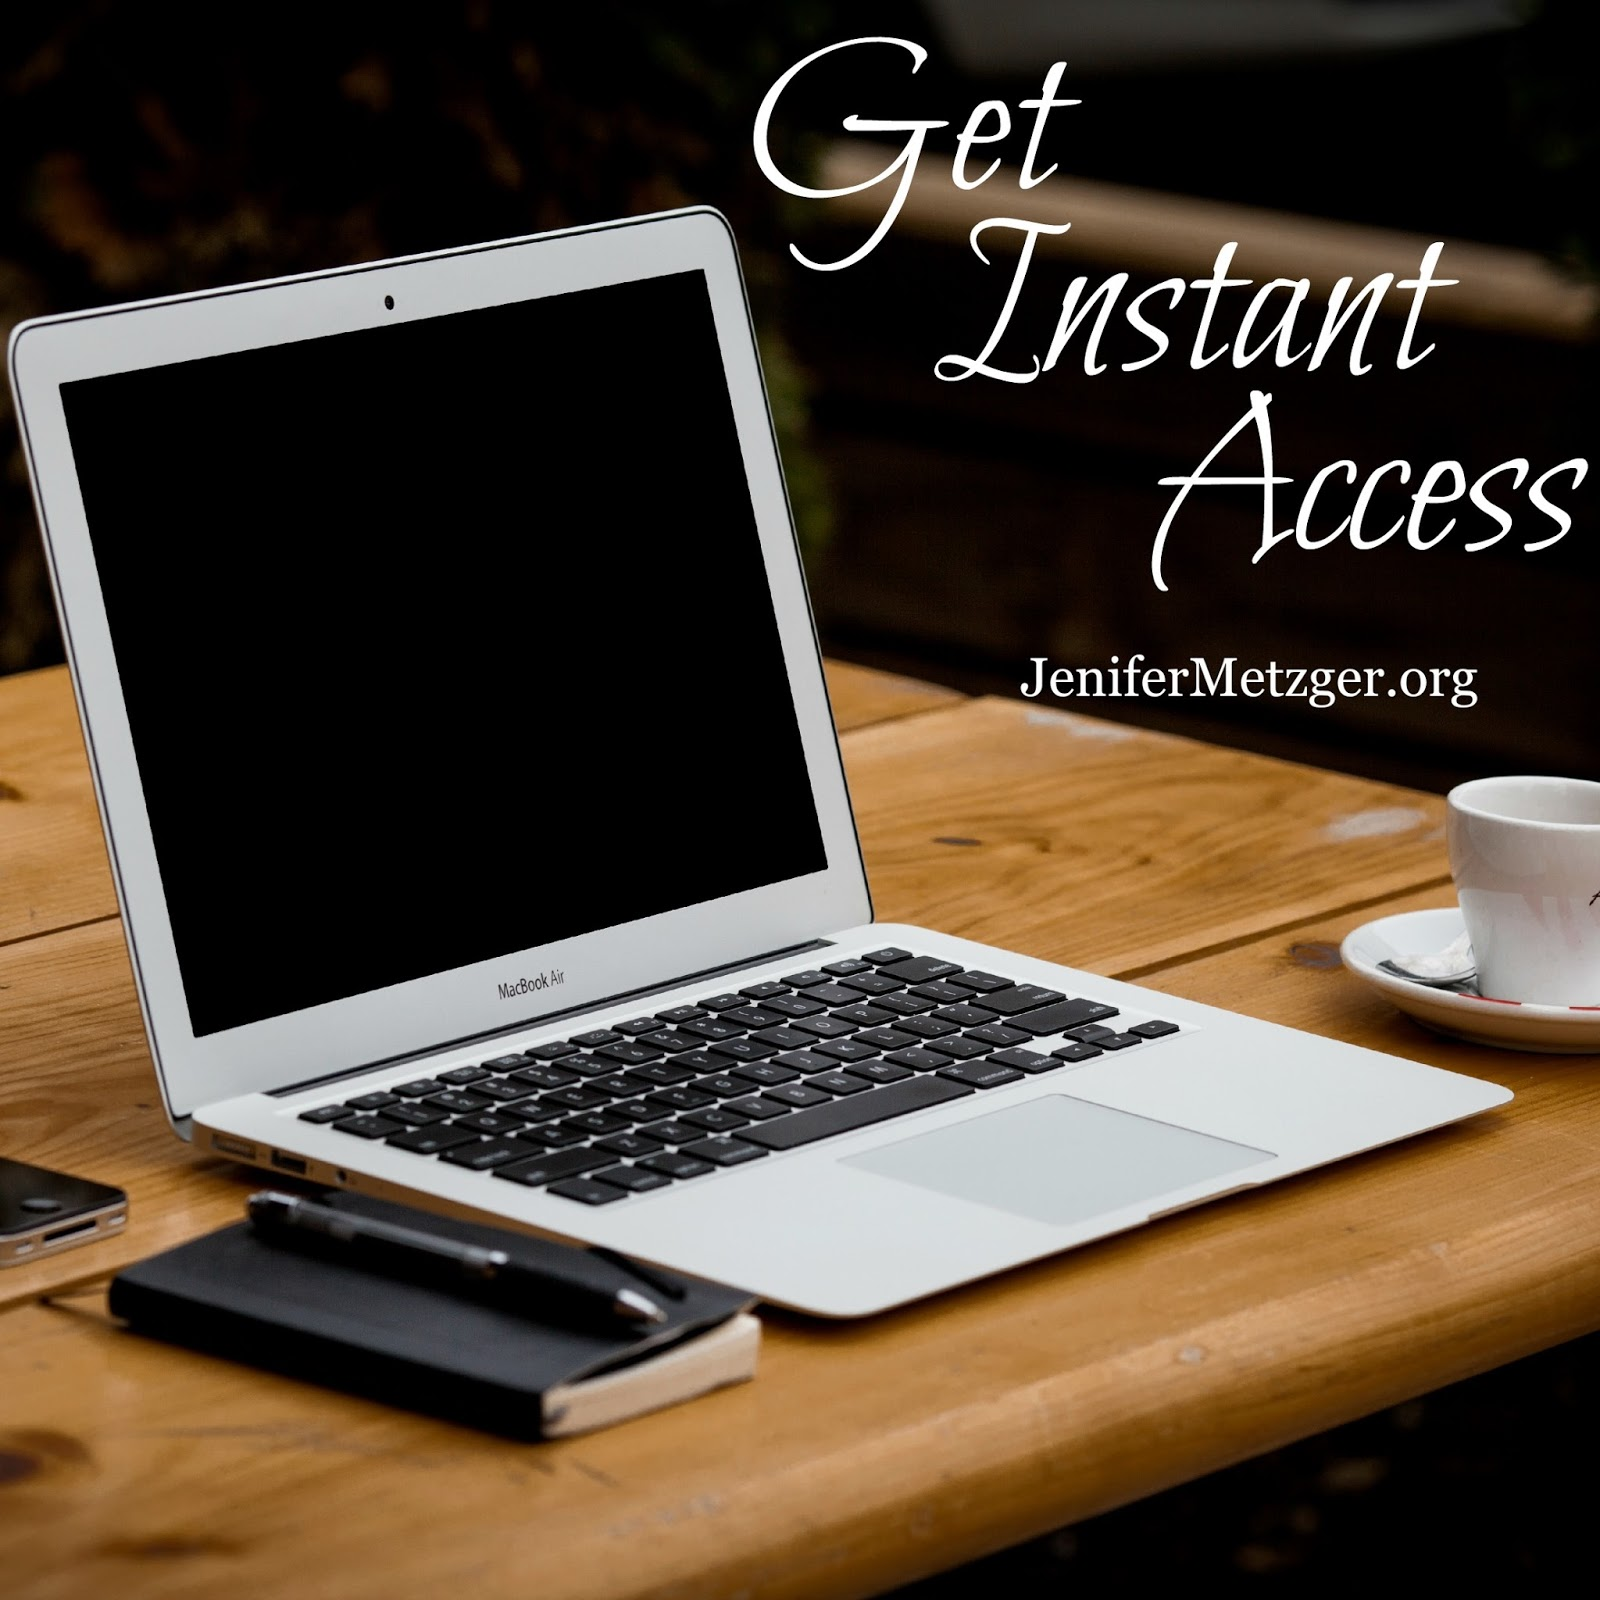 Get Instant Access...to God.